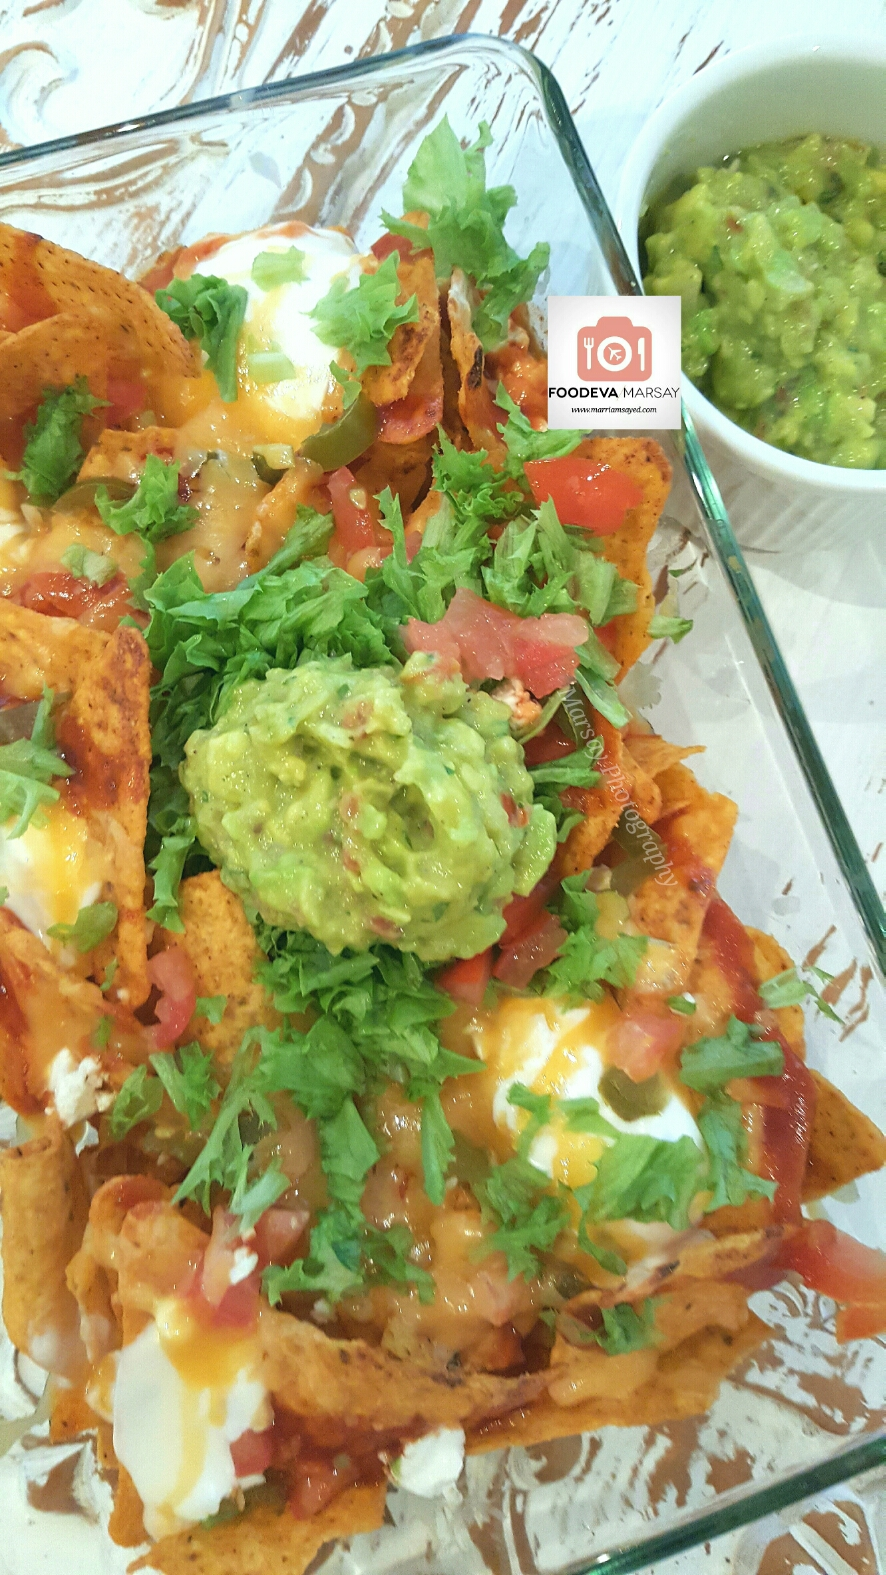 Nachos are Ready to enjoy...